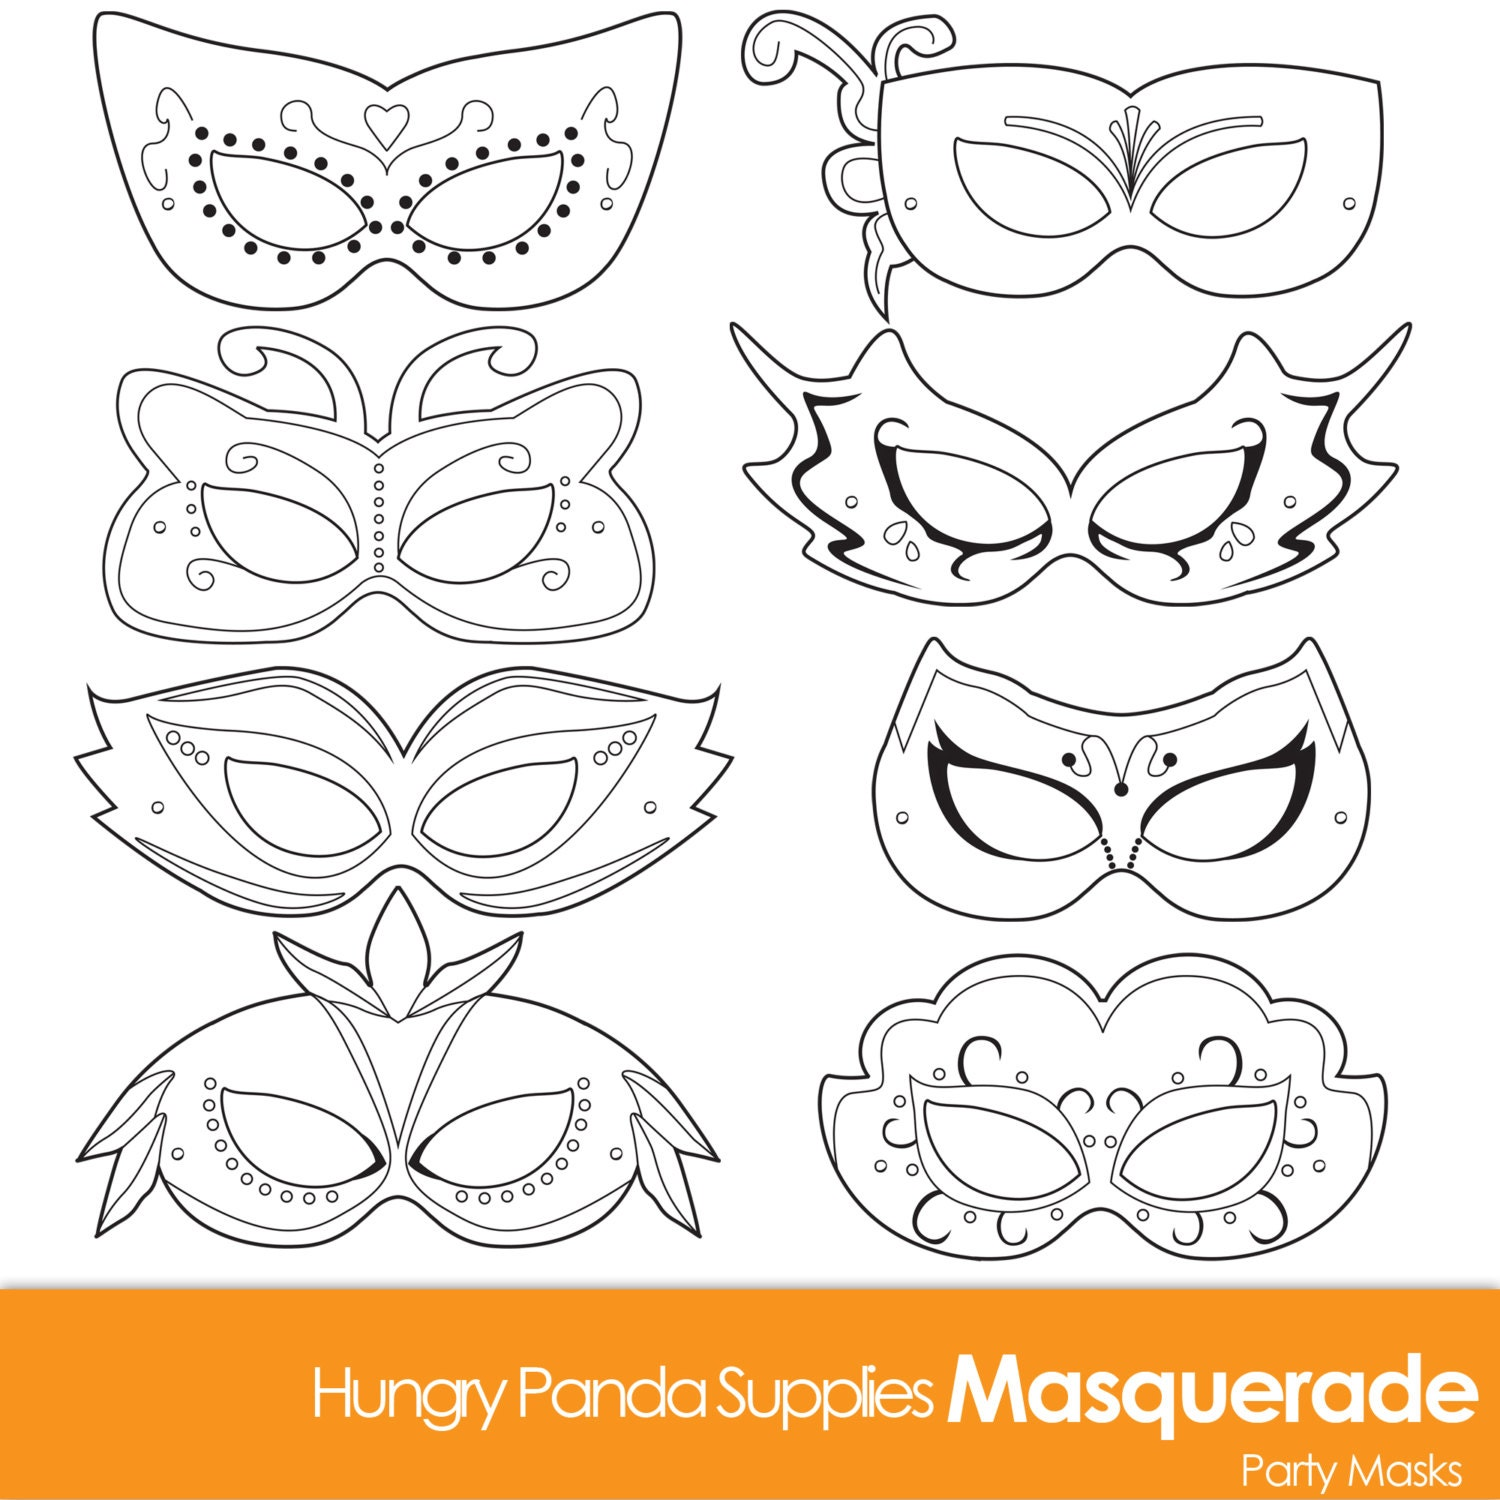 This is an image of Unusual Printable Masks for Kids